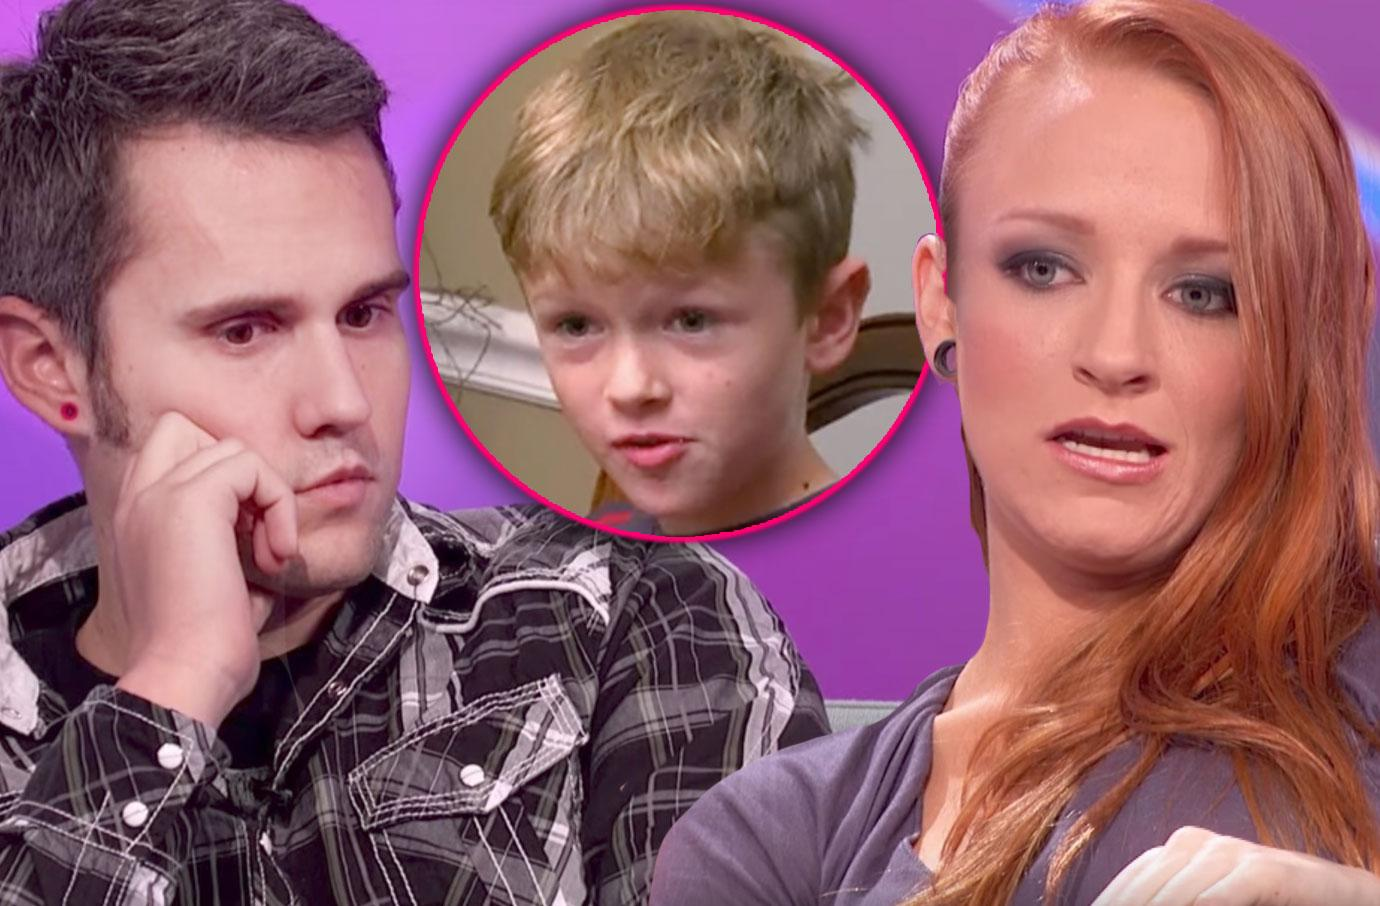 maci bookout keeping son from ryan edwards drug issues teen mom